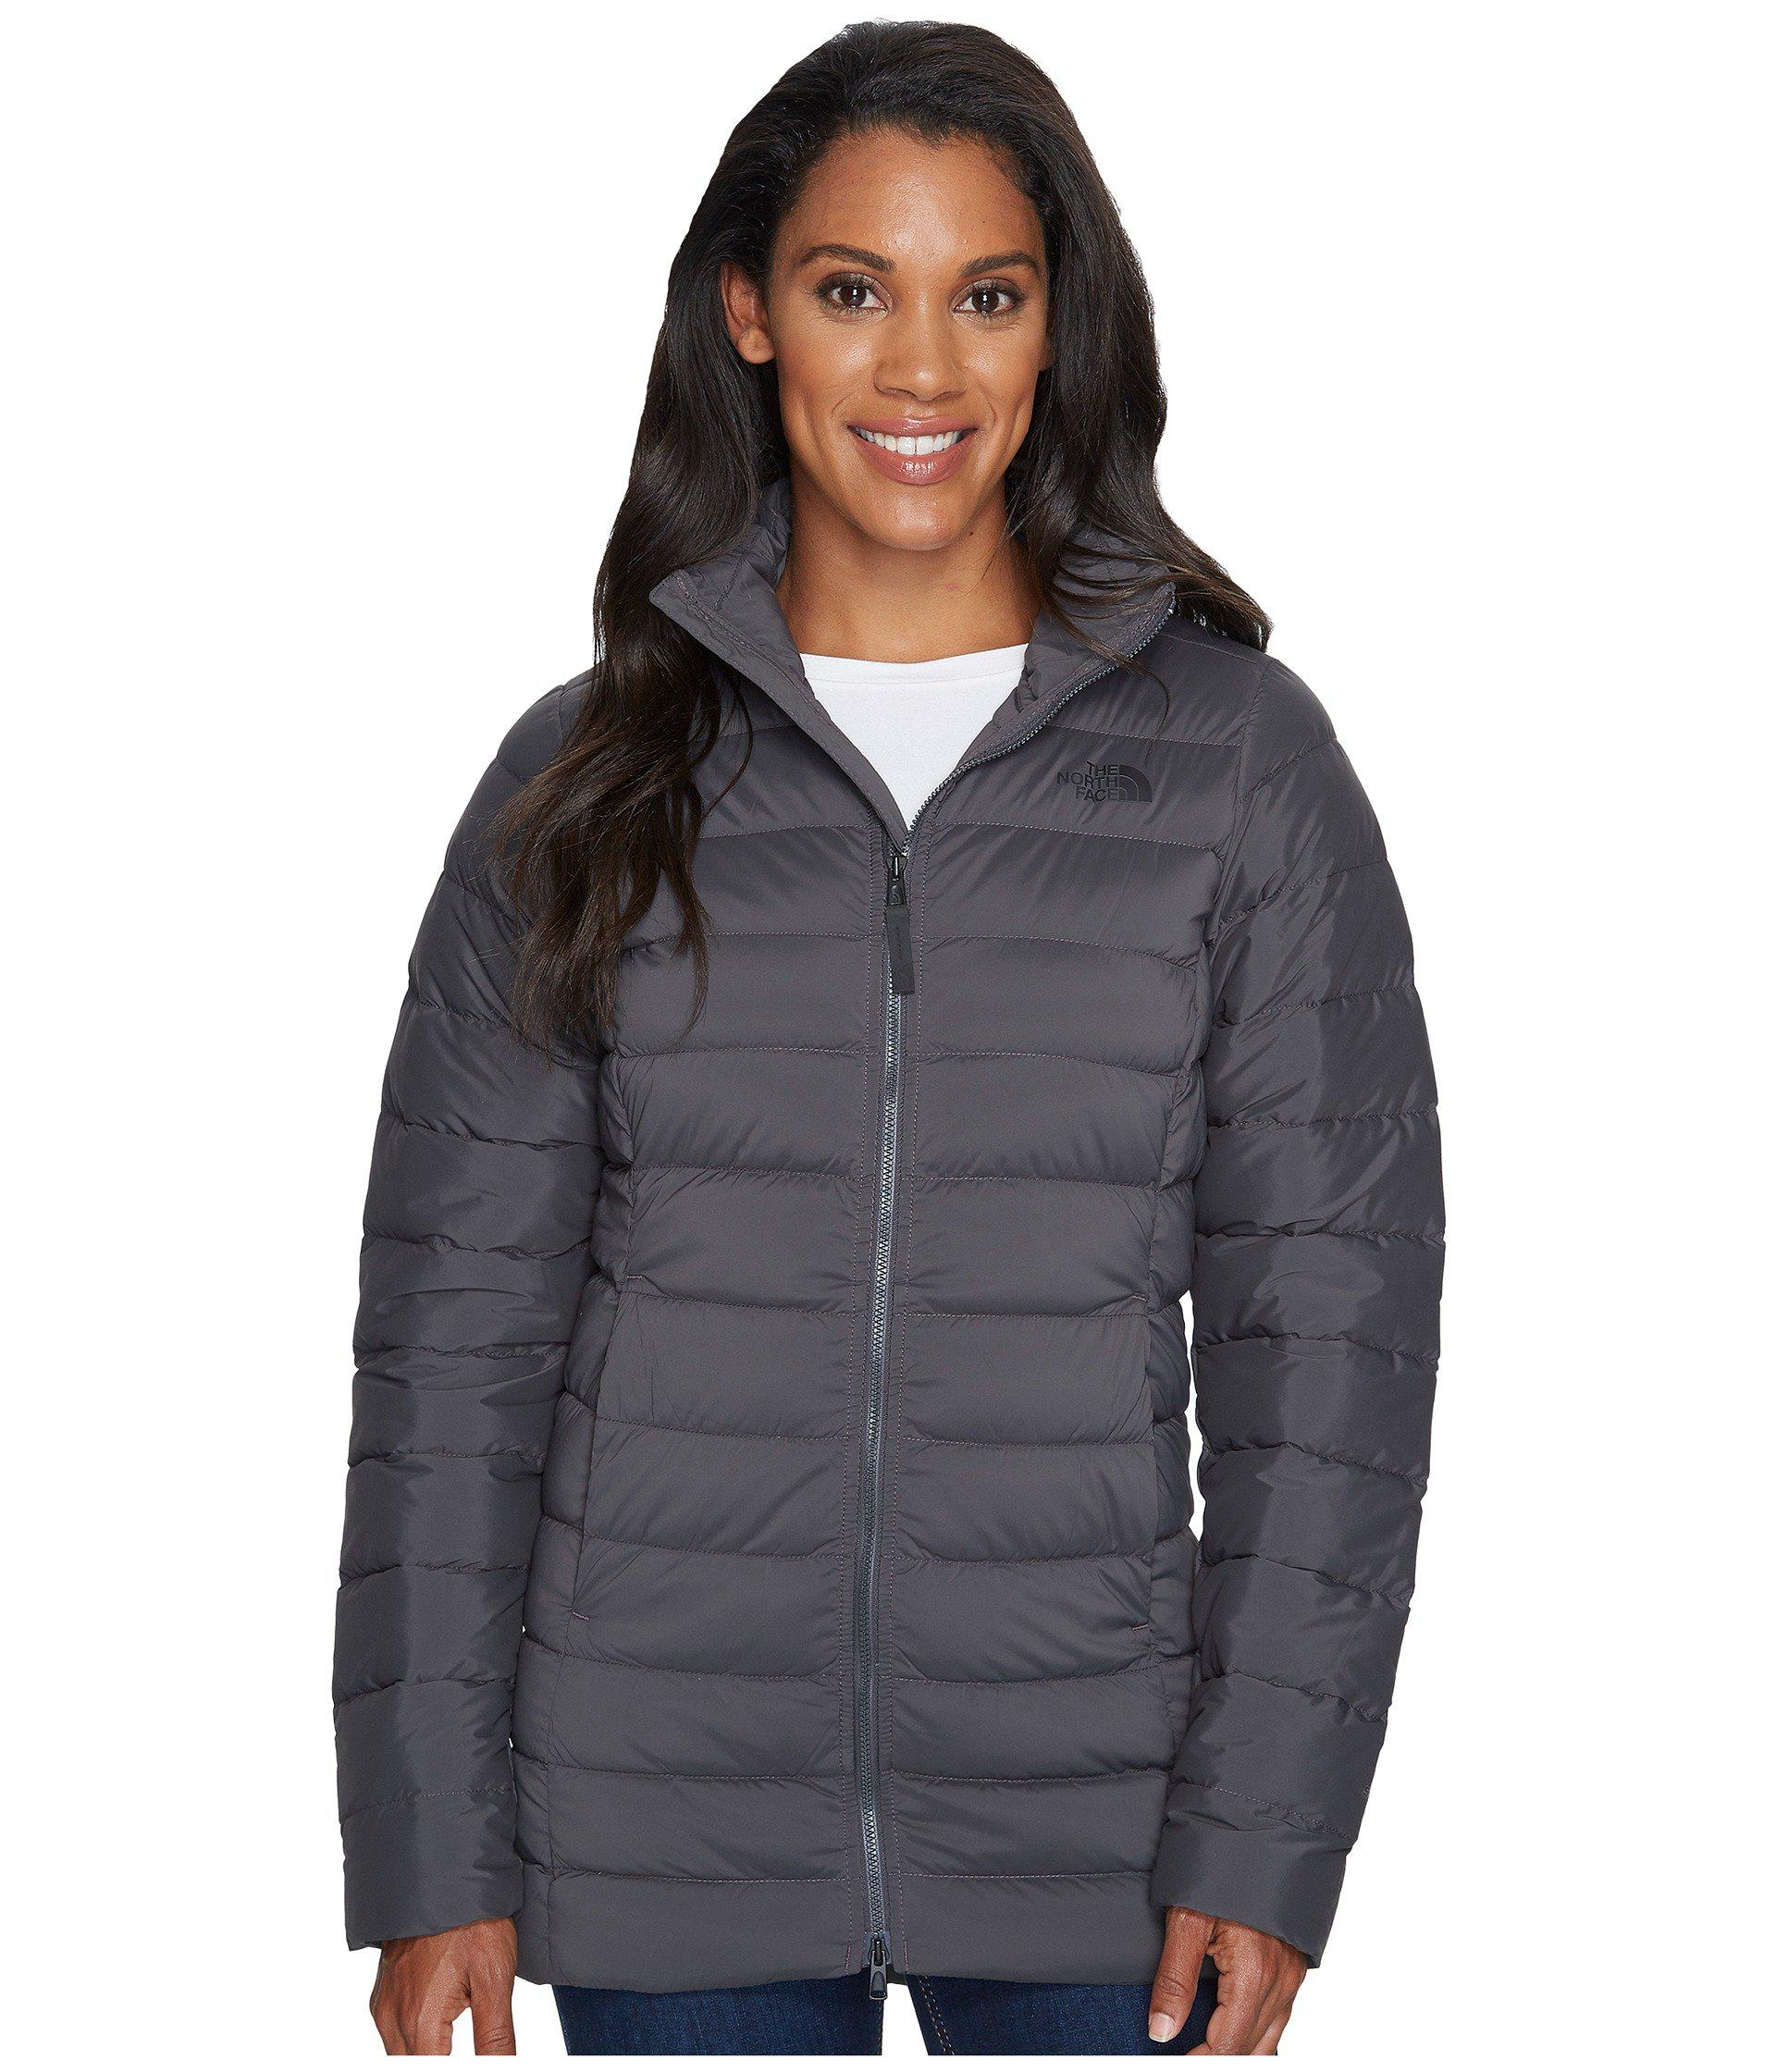 North face puffer jacket damen